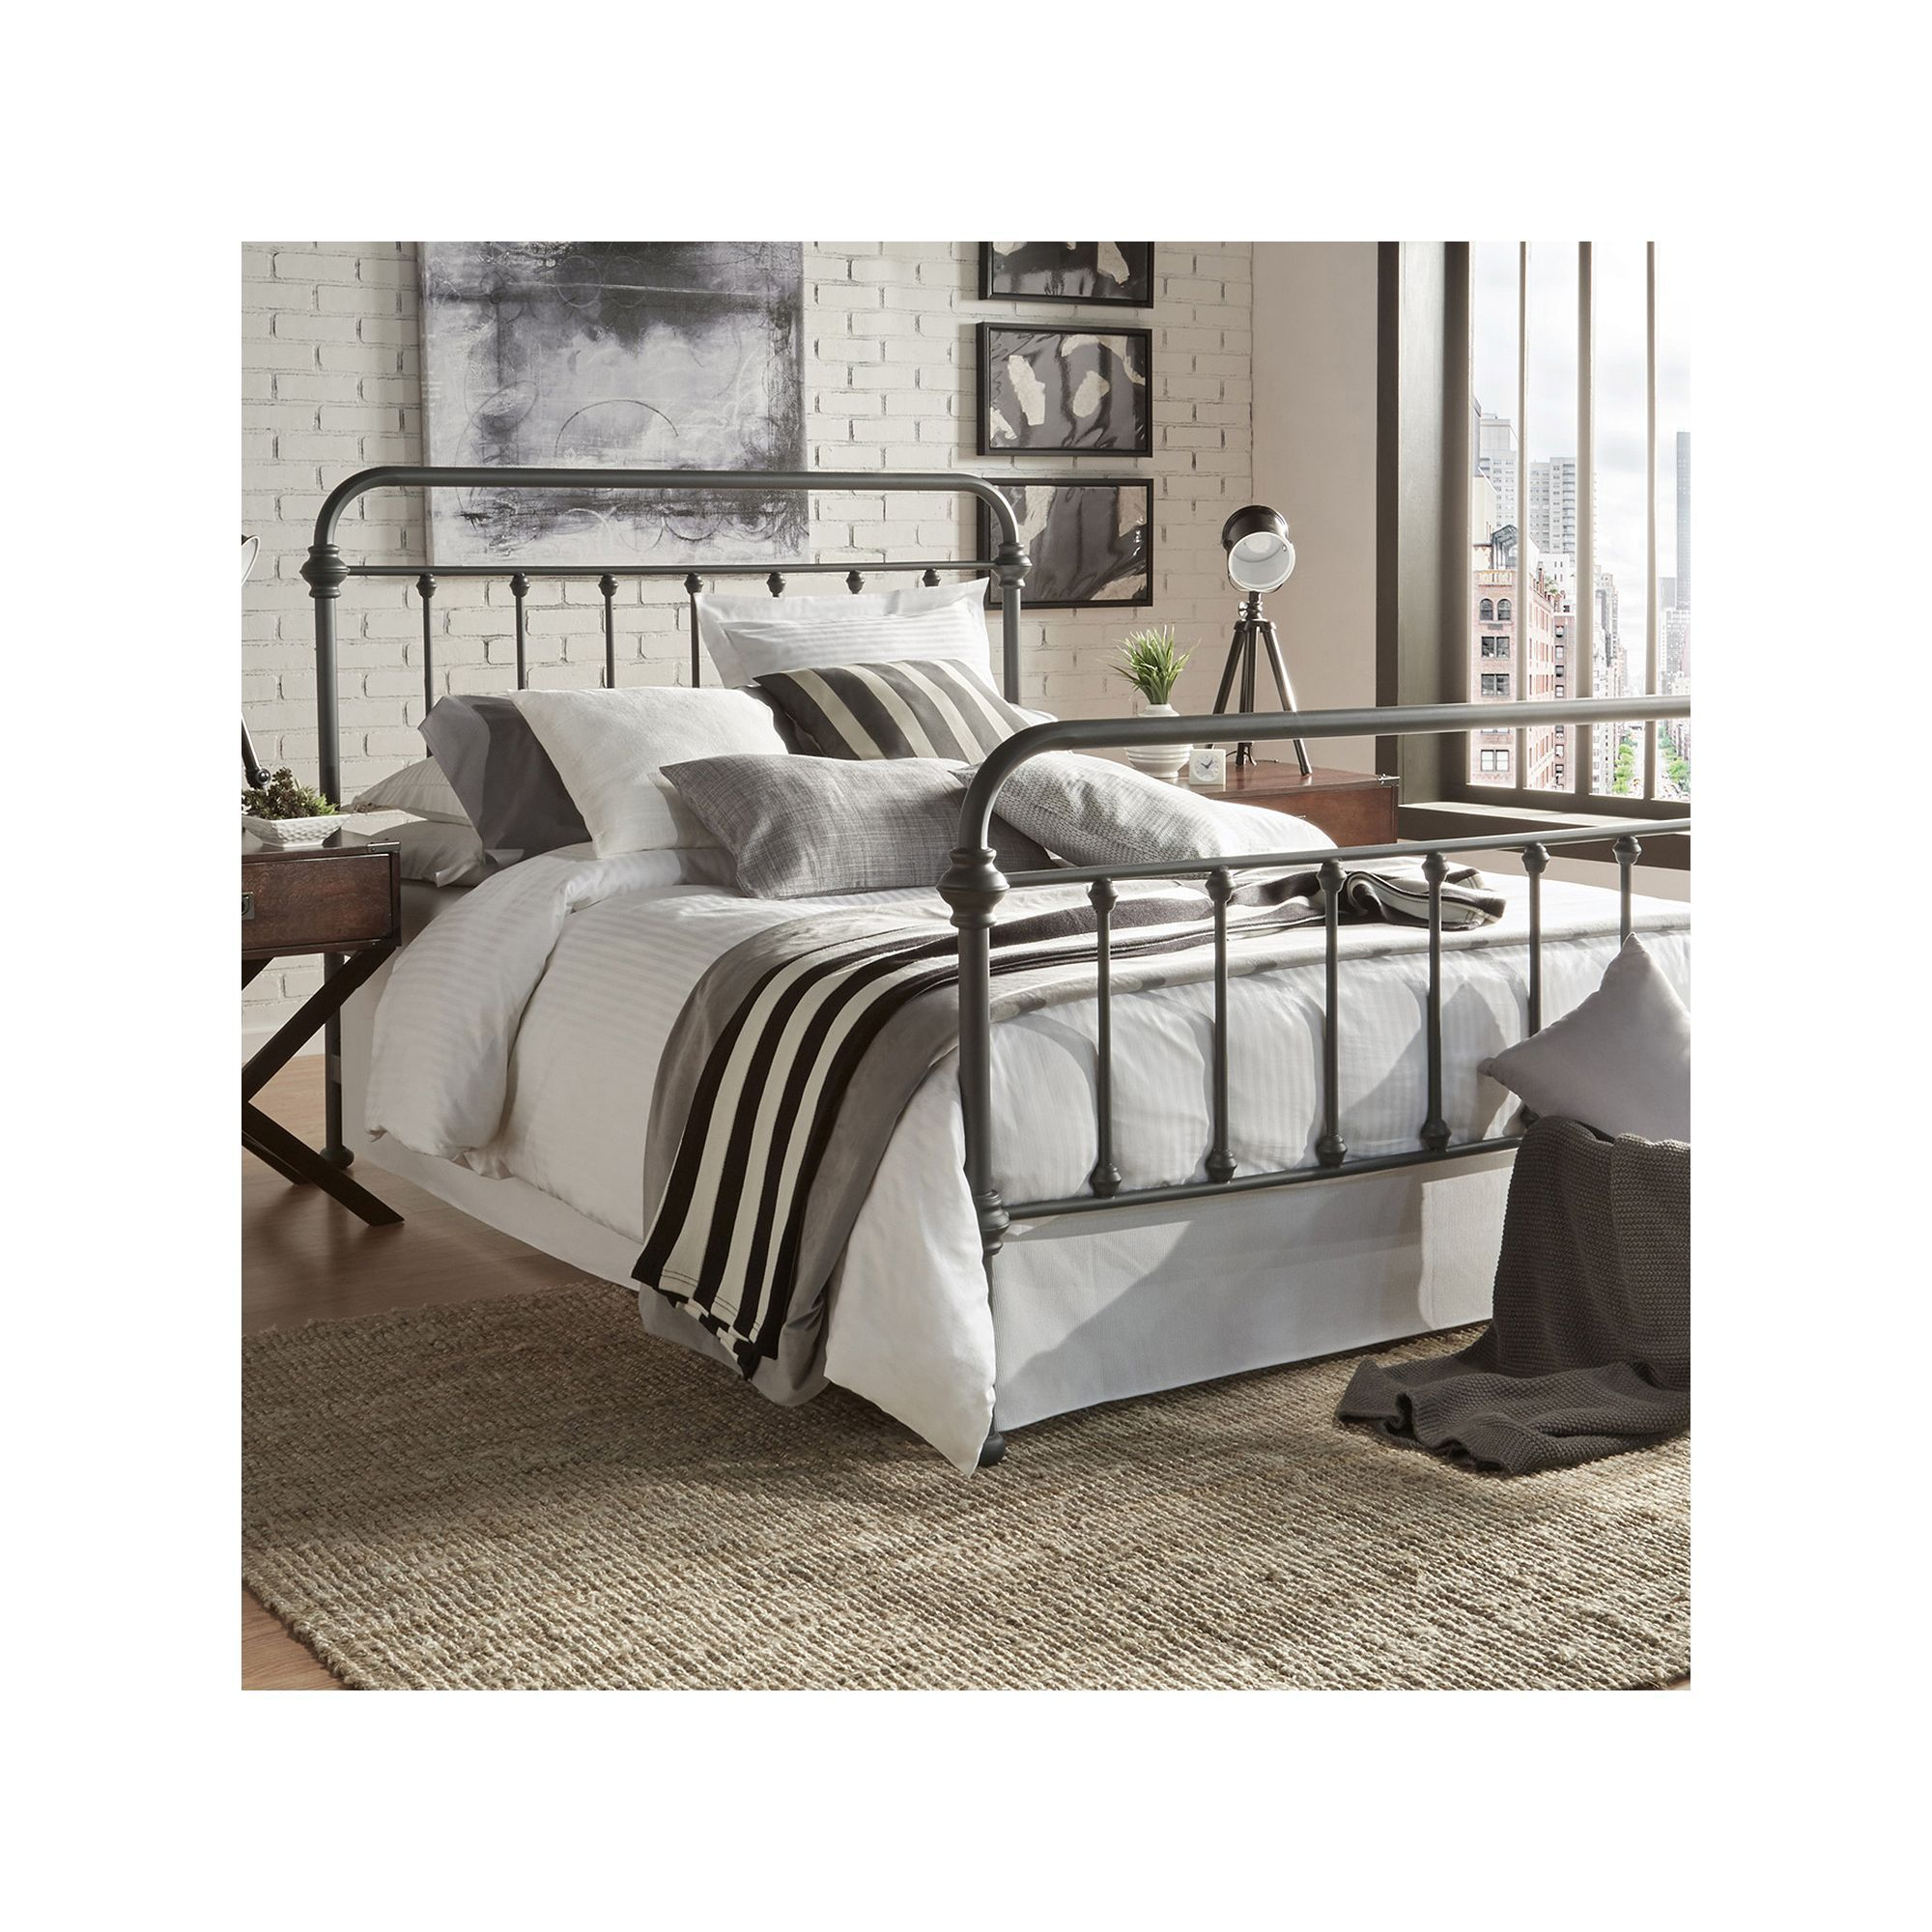 Homevance Homevance Alaina Metal Bed Products Metal Beds Bed